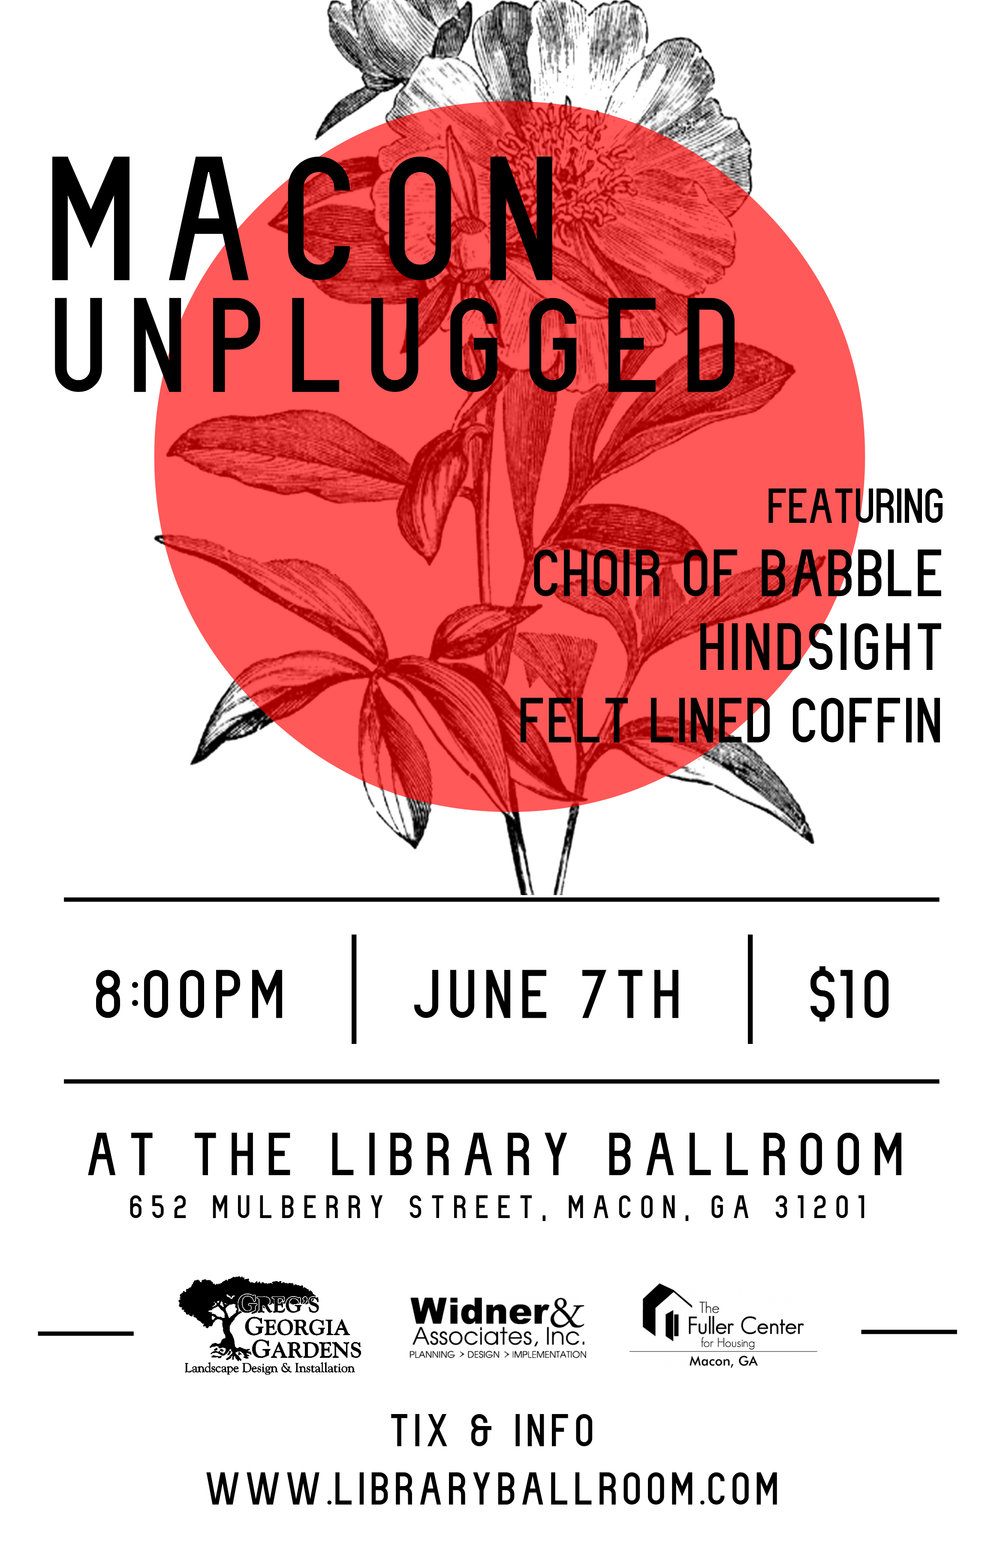 Macon Unplugged - Library Ballroom - June 7th.jpg